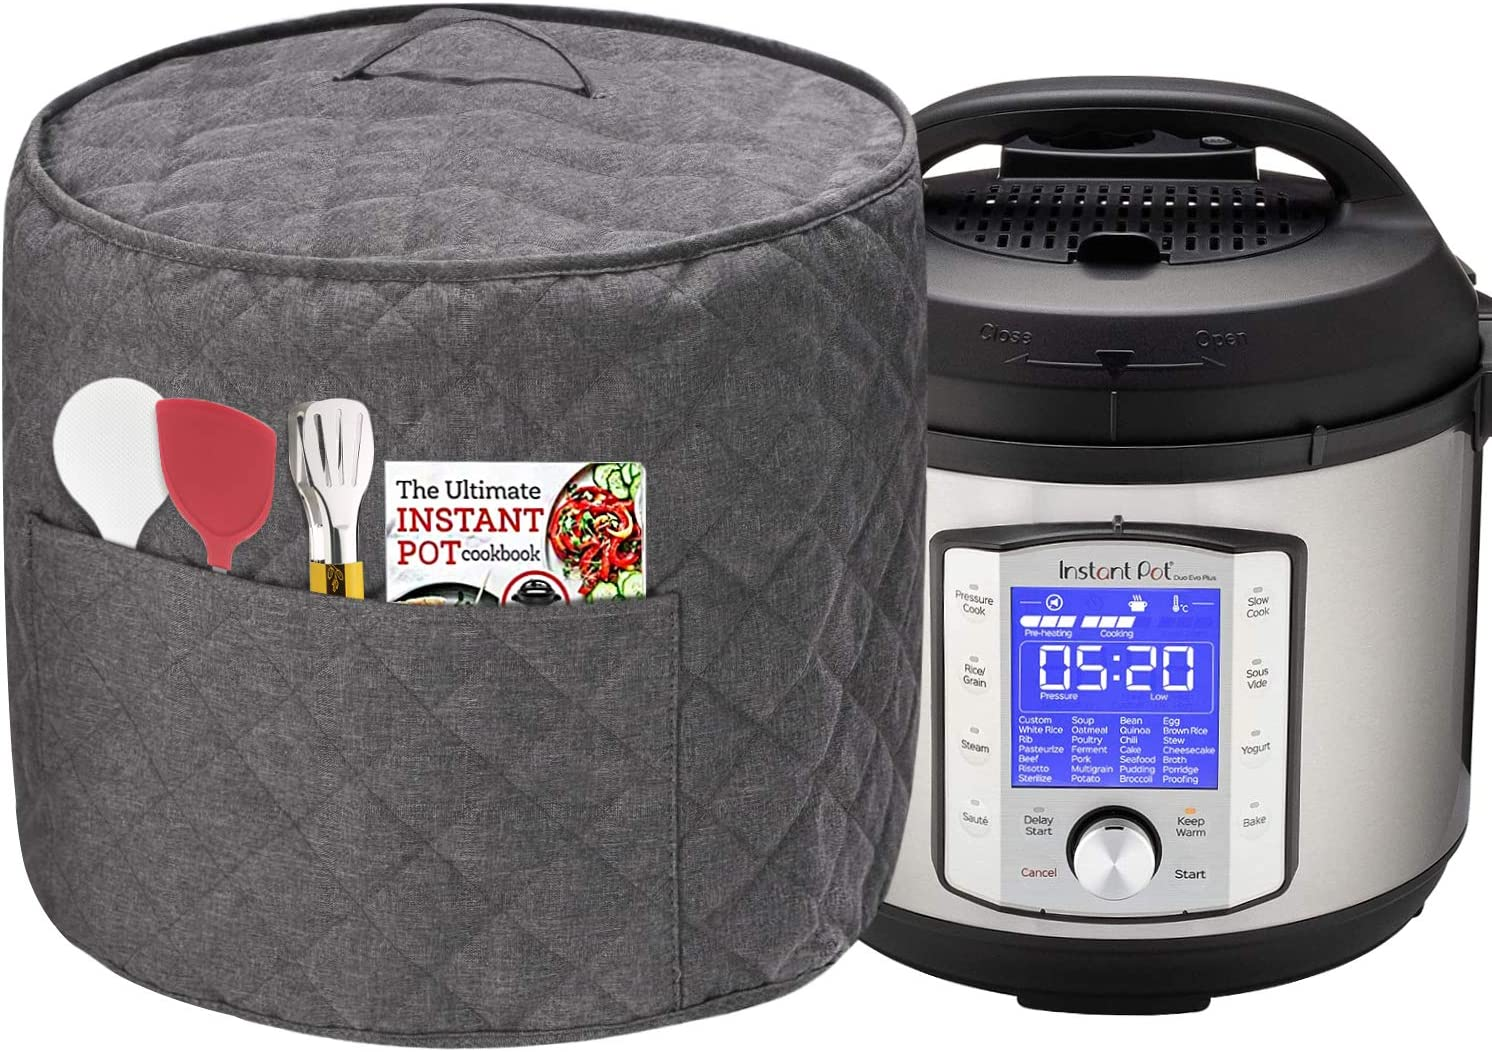 Dust Cover for Instant Pot Pressure Cooker, Cloth Cover with Pockets for Holding Extra Accessories, Waterproof Easy Cleaning,Can Ironable (Dark Gray, For 8 Quart Instant Pot)